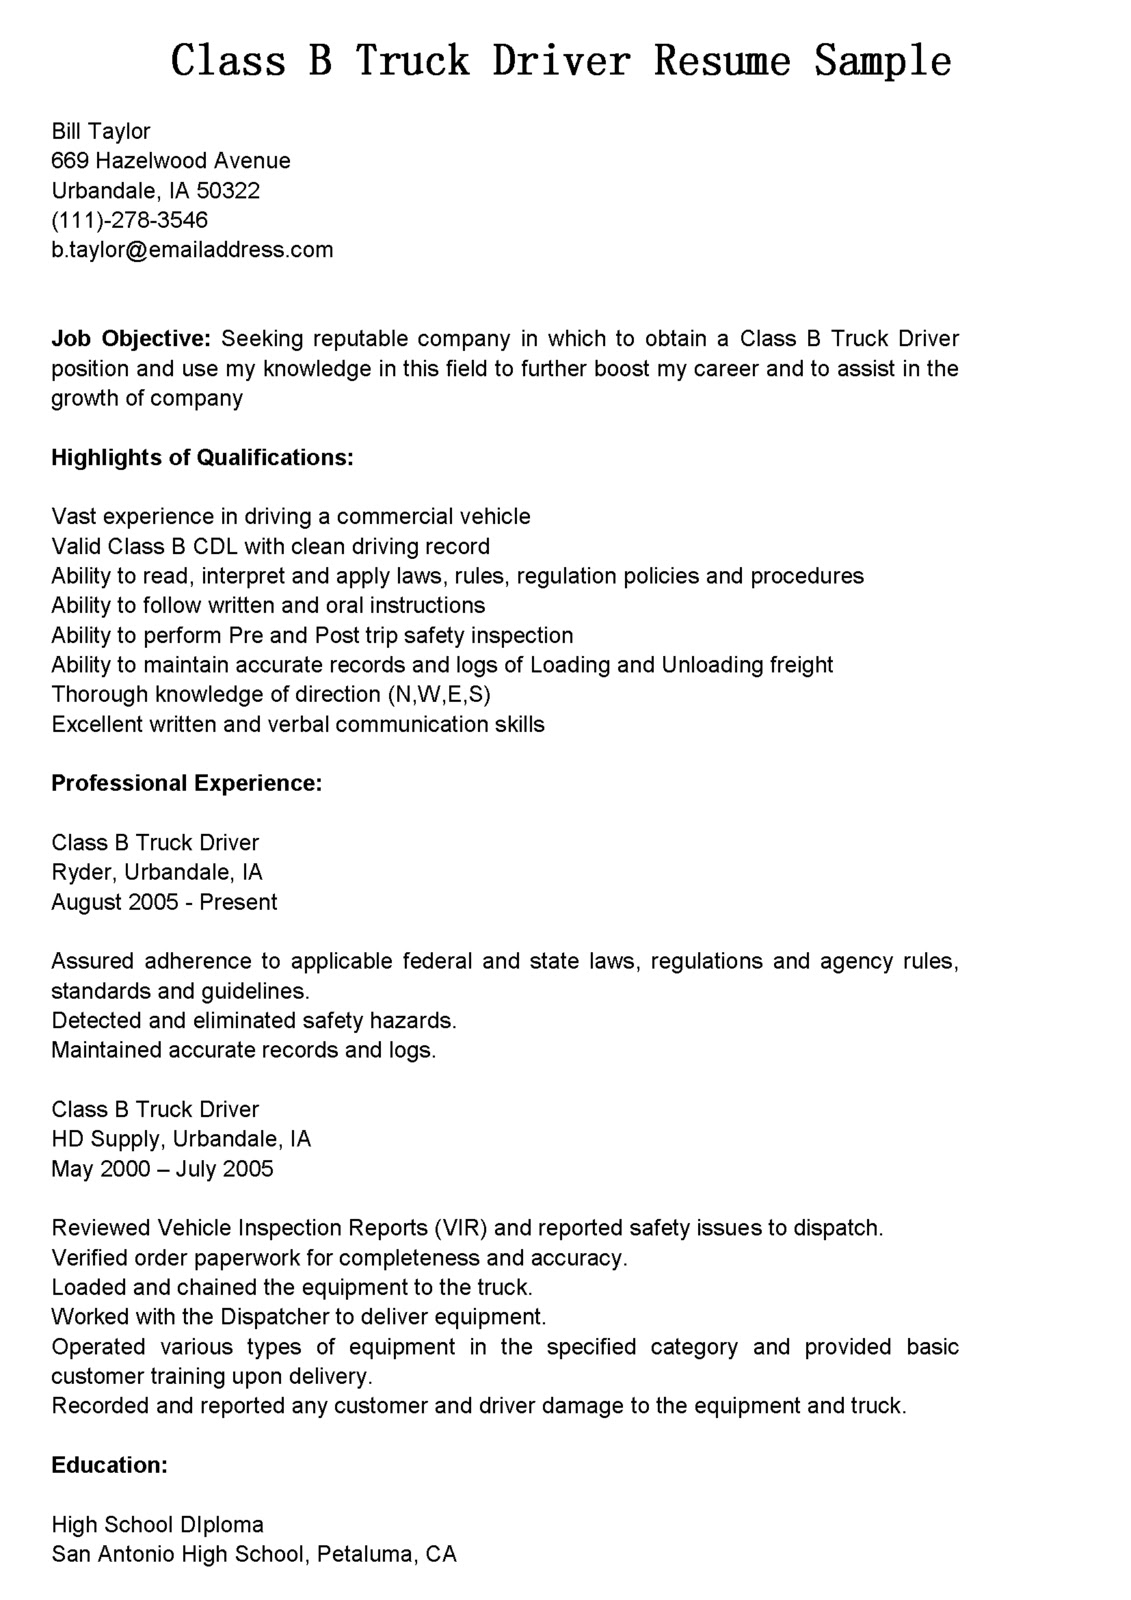 resume for truck driver sample customer service resume resume for truck driver truck driver resume best sample resume bsr driver resumes class b truck